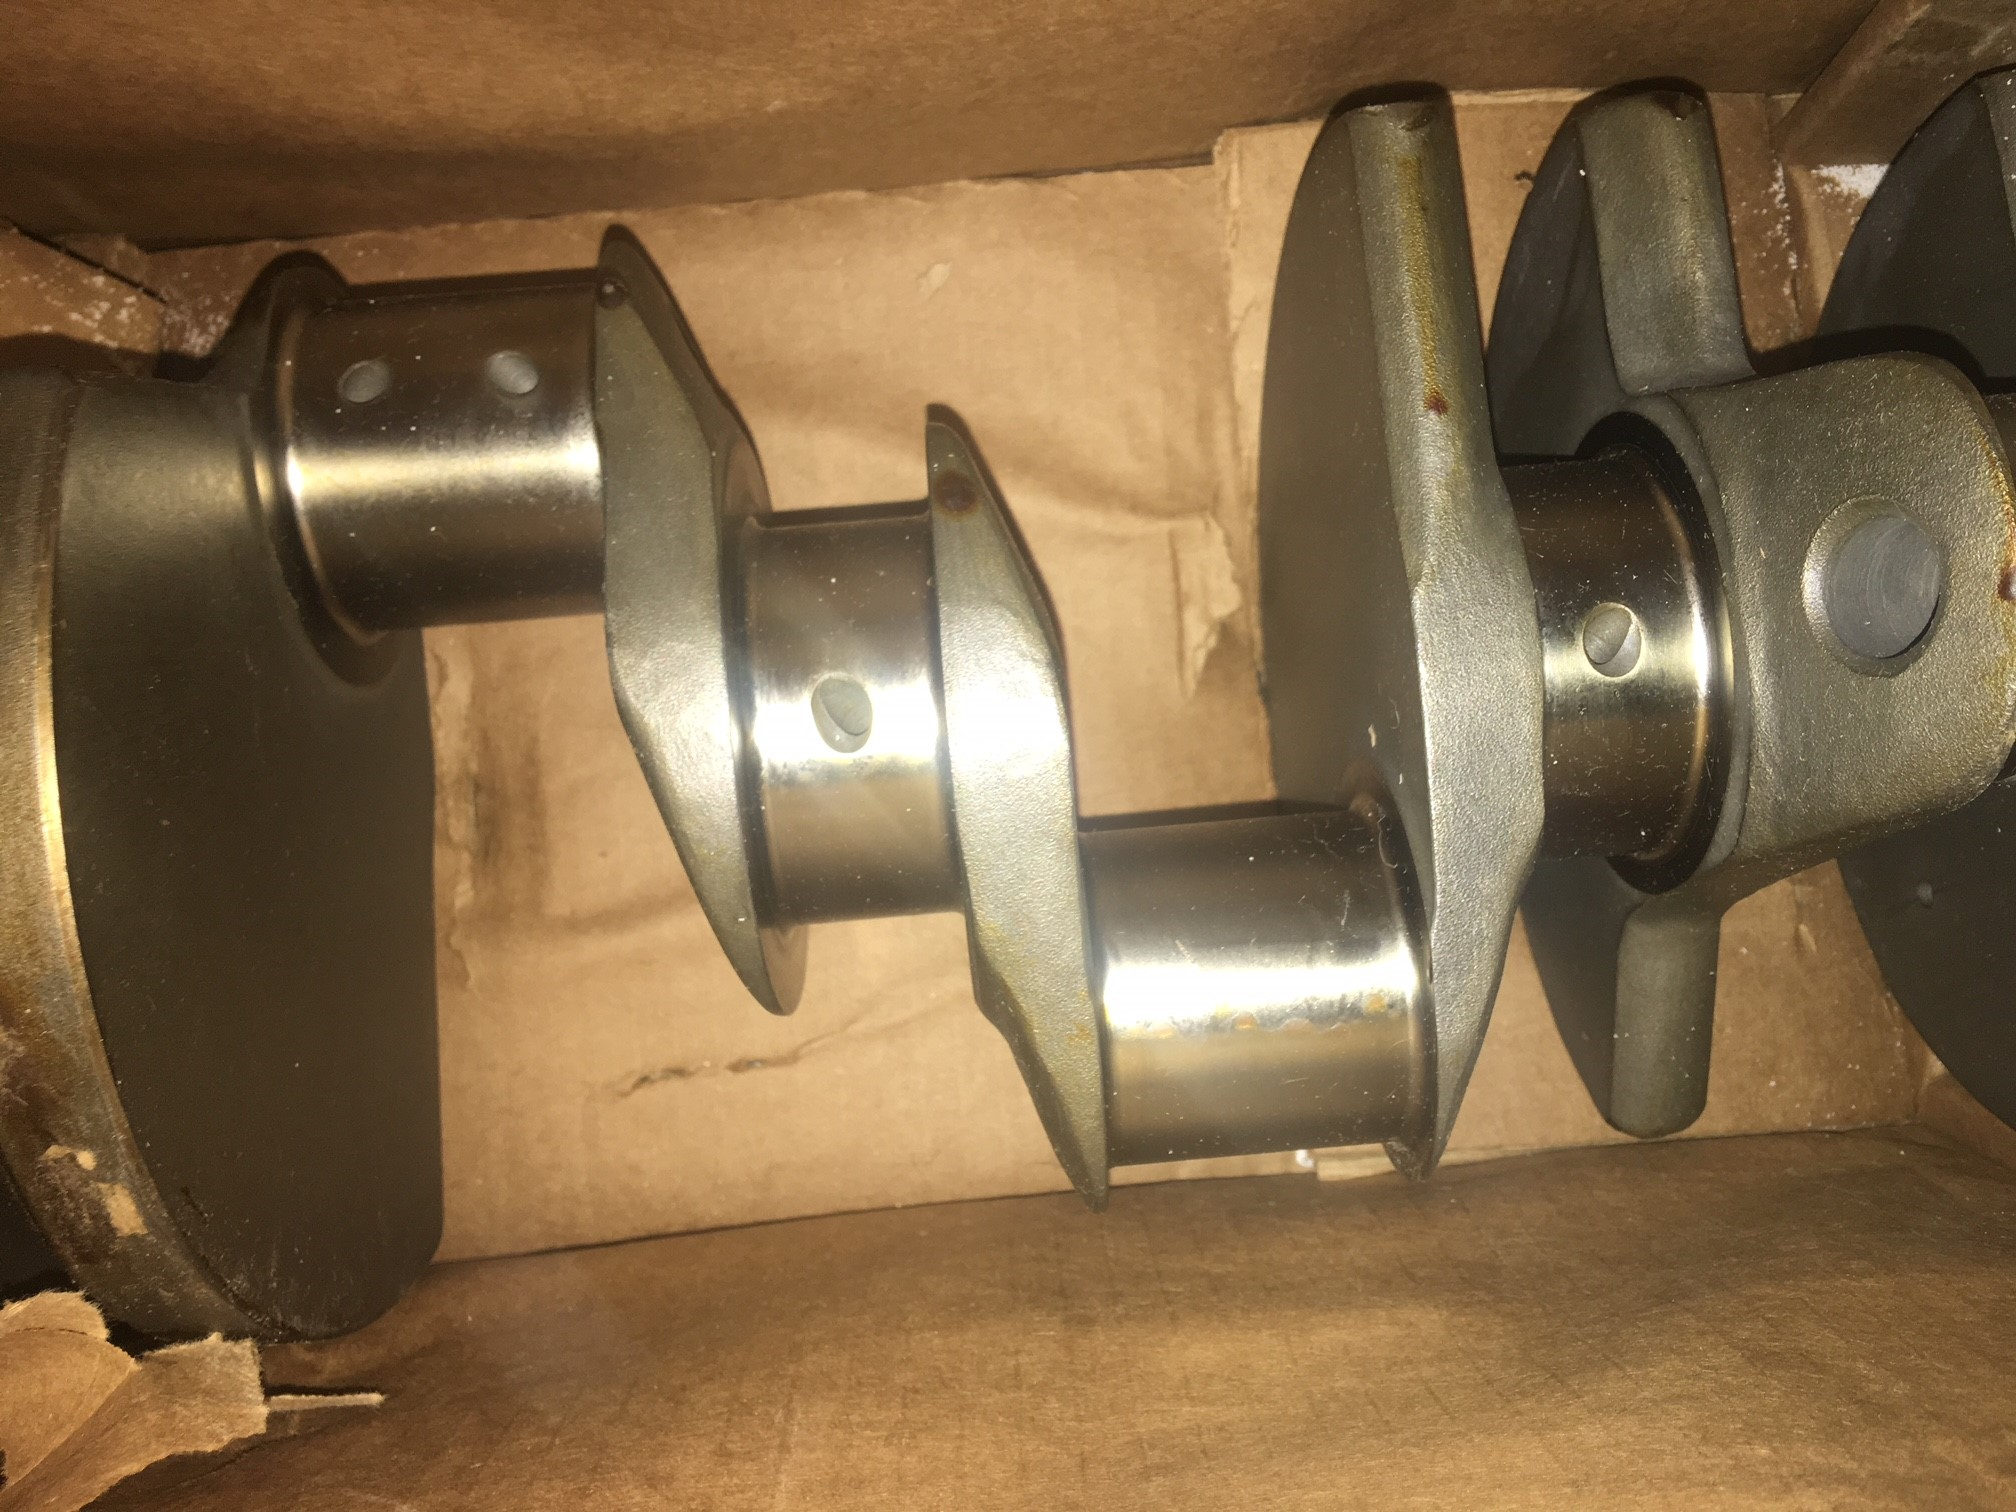 Mopar forged crankshaft and forged pistons